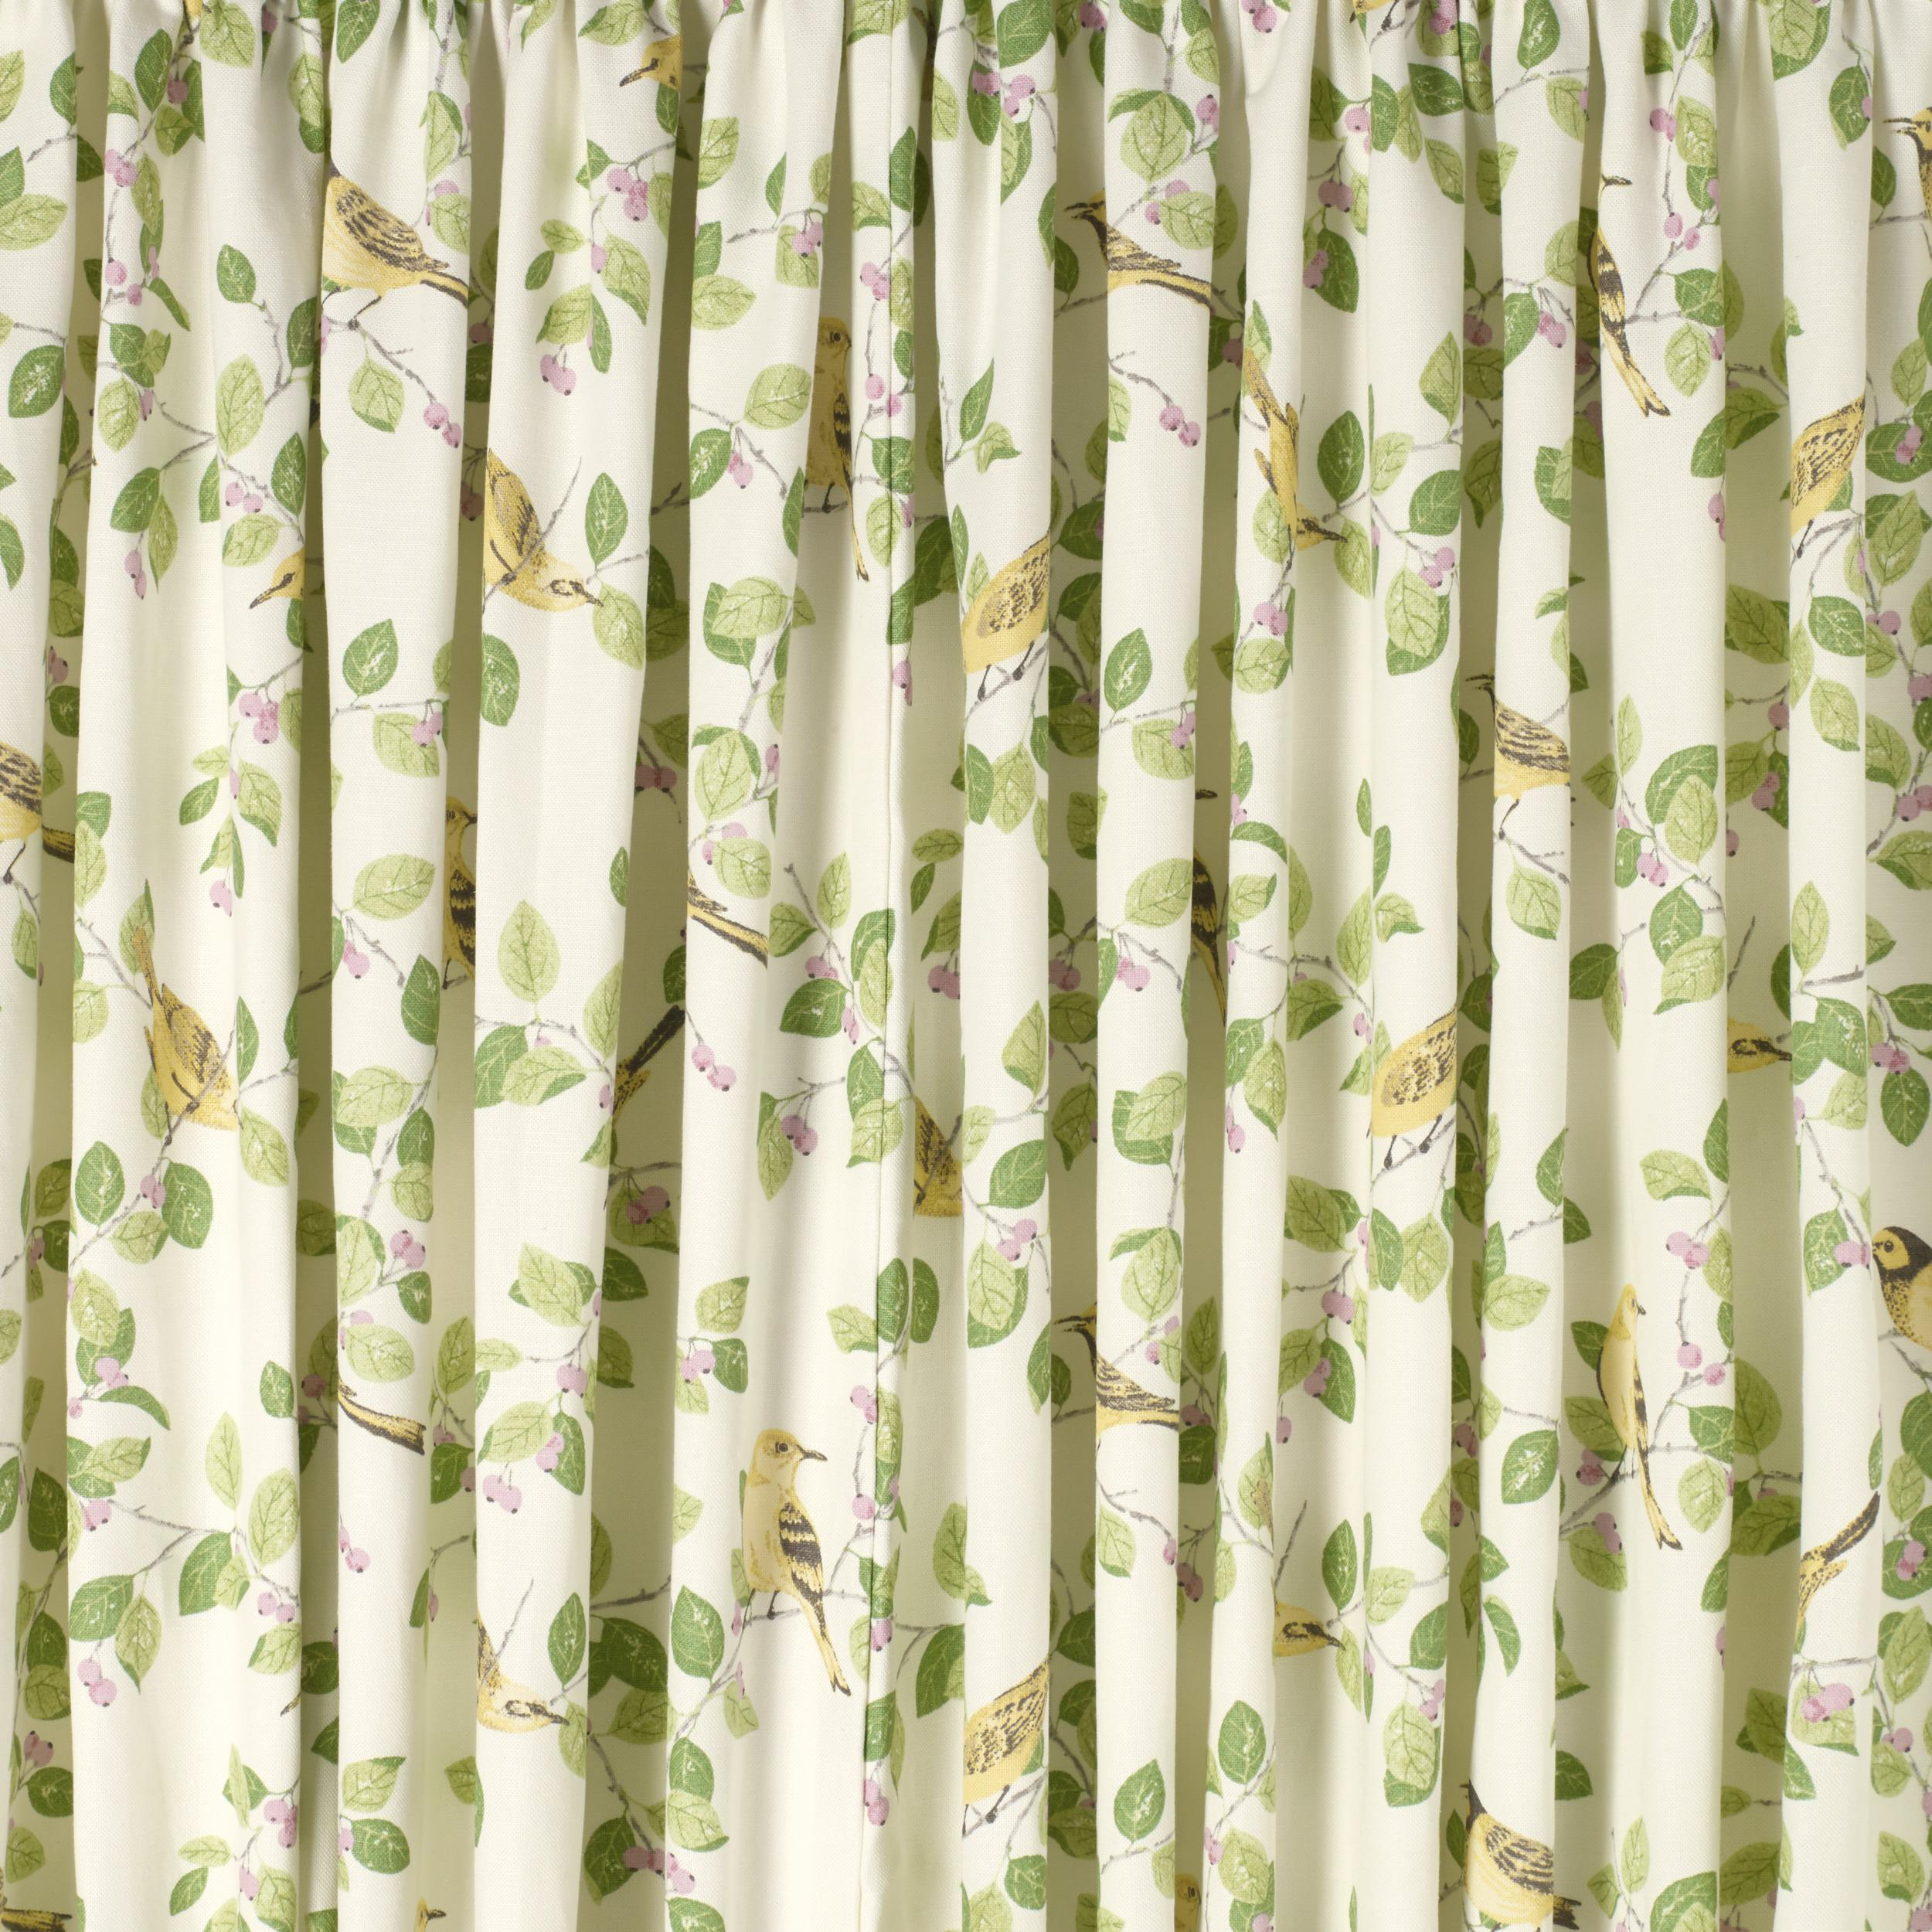 Image of: Green And White Striped Curtains